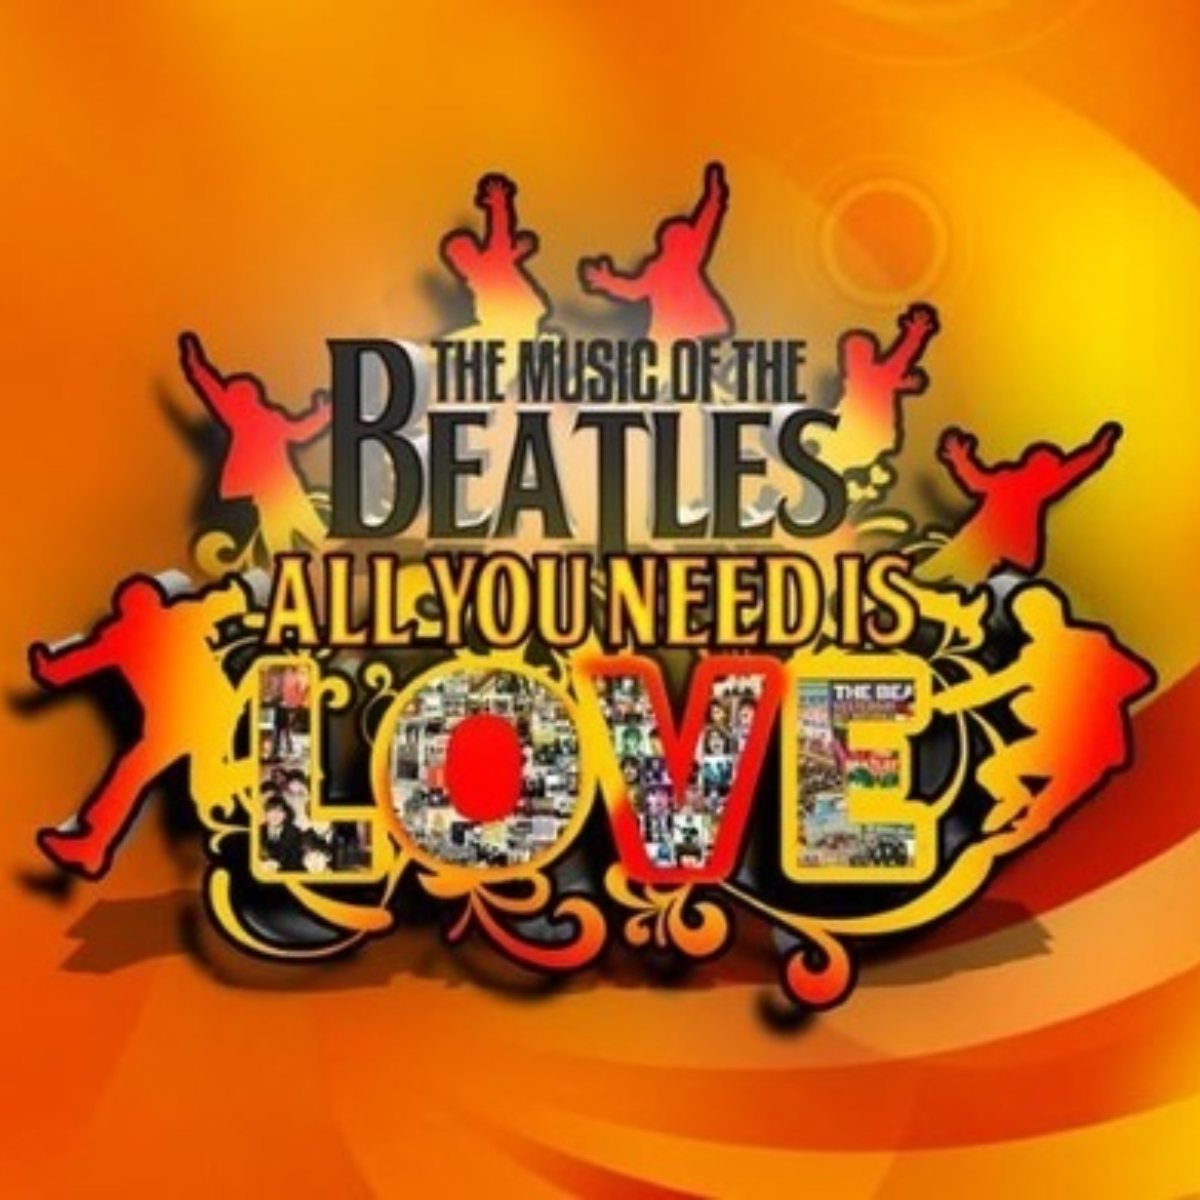 All You Need Is Love - The Discovery Of Beatlemania Images